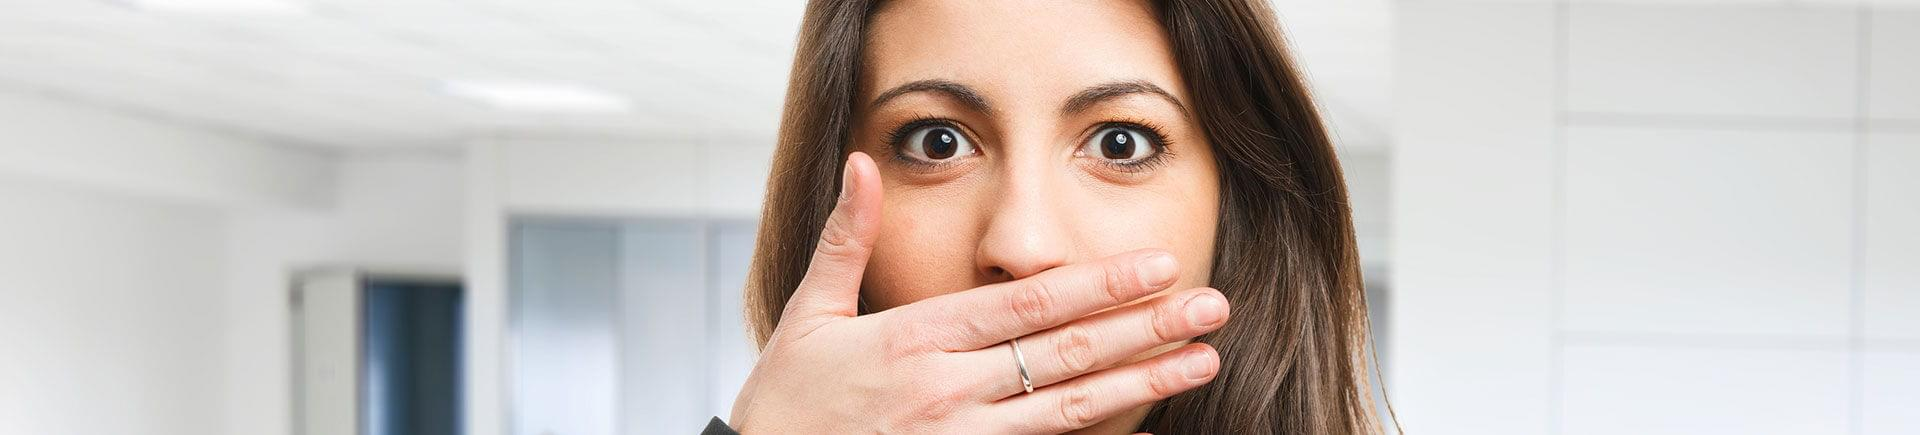 A young woman covering her mouth with her hand due to bad breath.